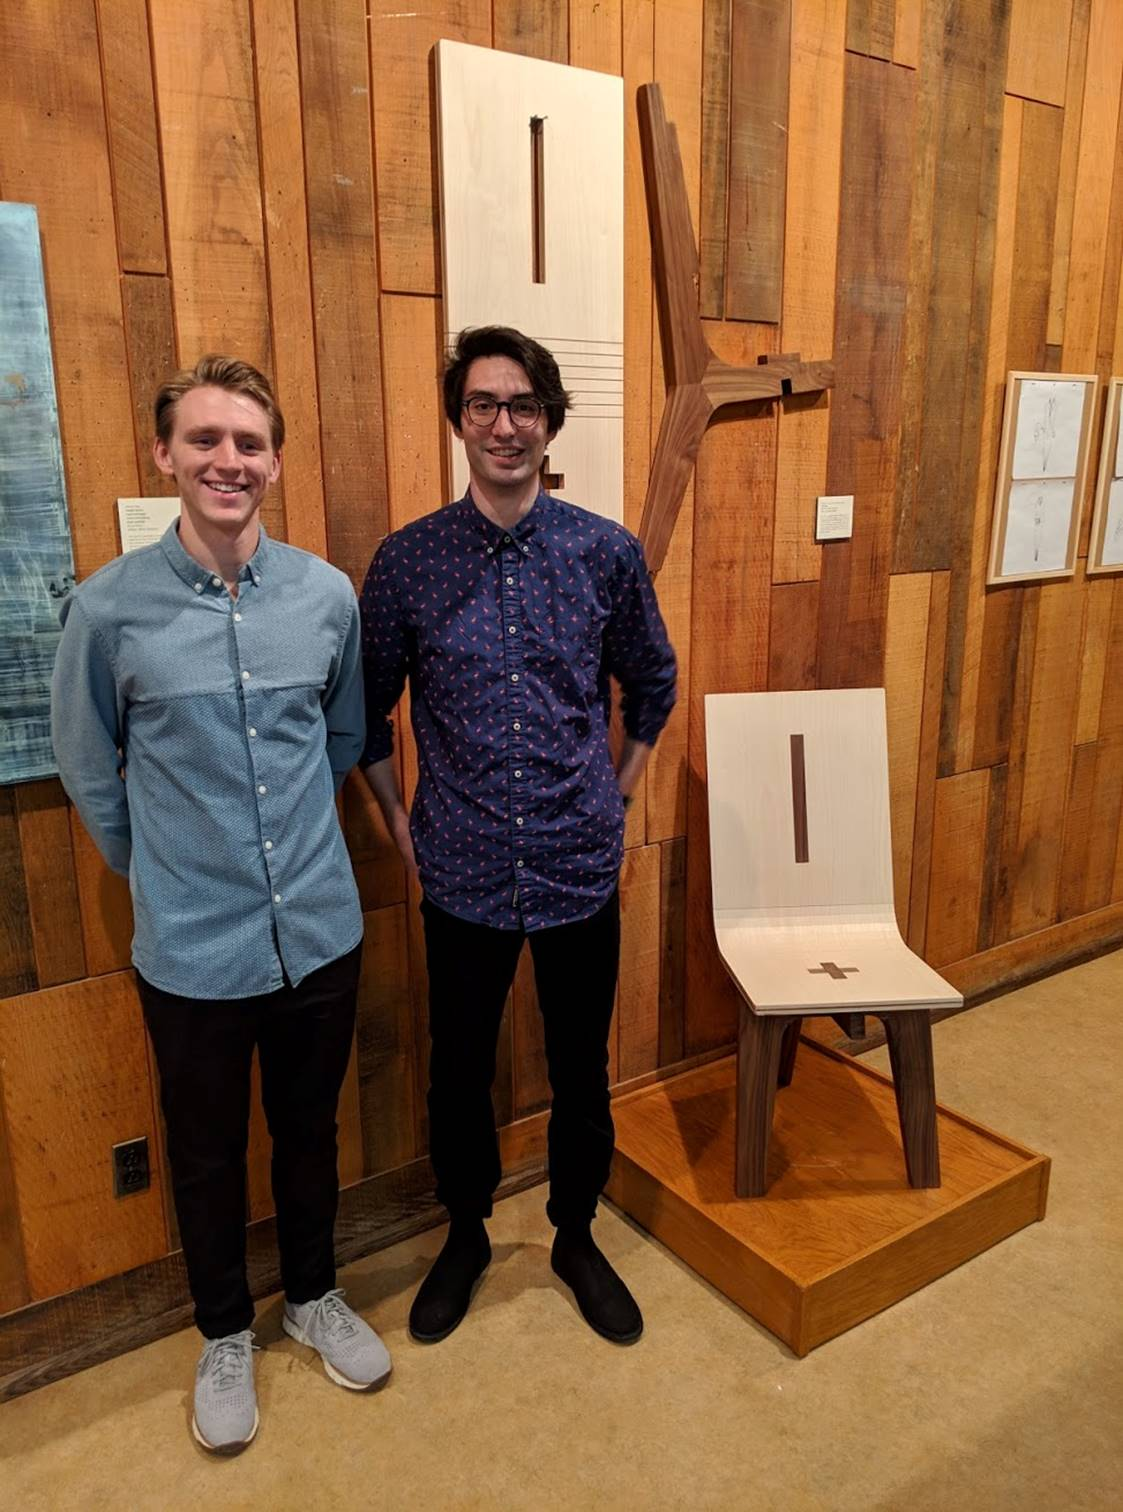 Nathan Miklo and Samuel Christianson, seniors in industrial design, with the flat-pack chair they designed for a Focus Grant project. The project is a finalist in the AWFS Fresh Wood student furniture design competition.